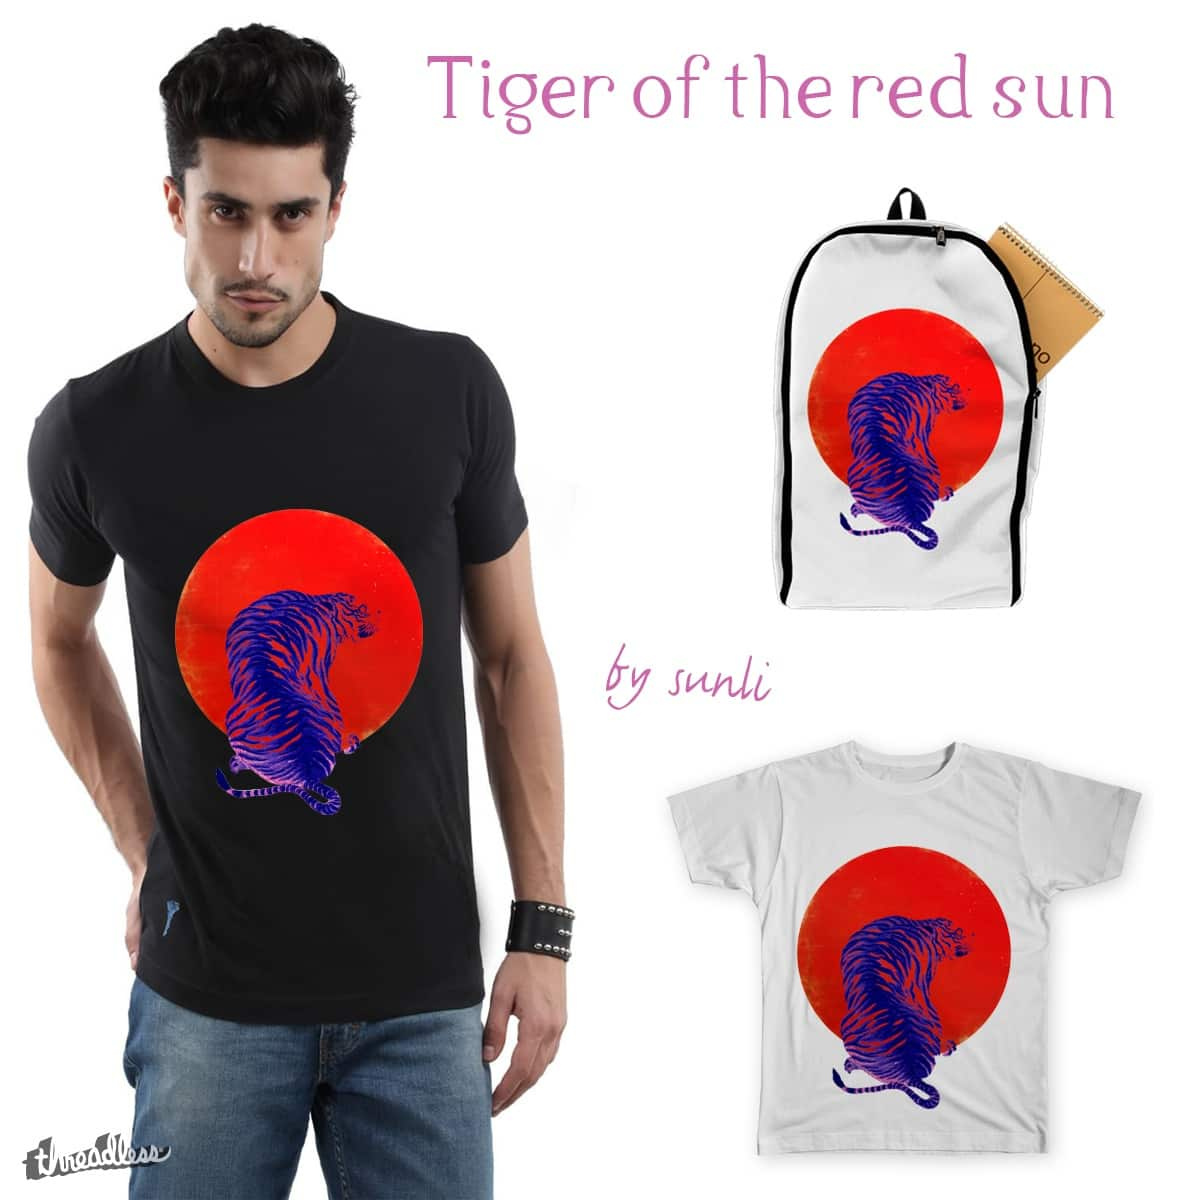 Tiger of the red sun by sunli on Threadless